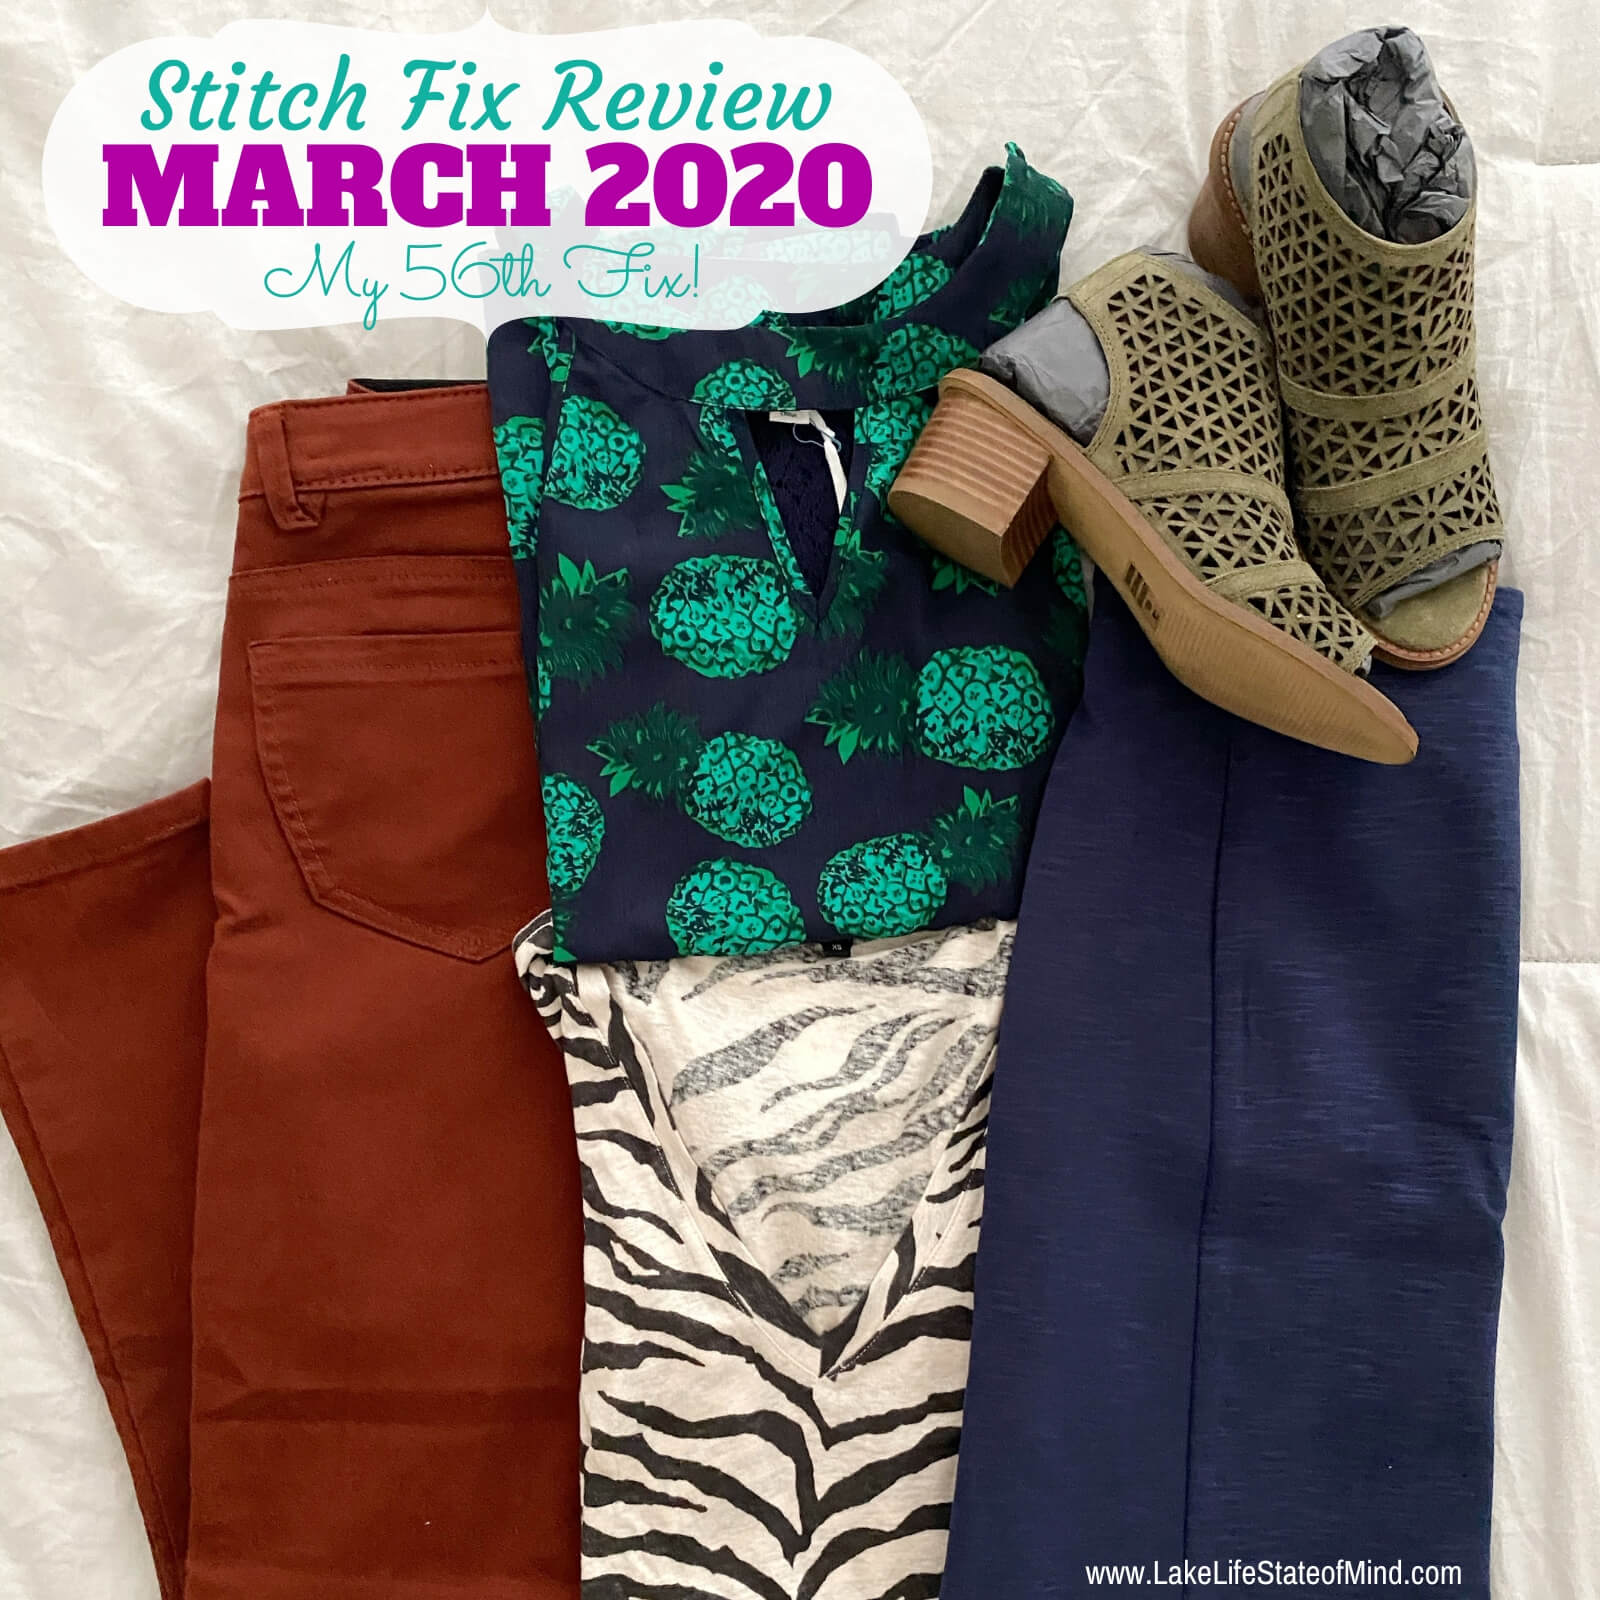 Stitch Fix Box Review: March 2020 Fix #56